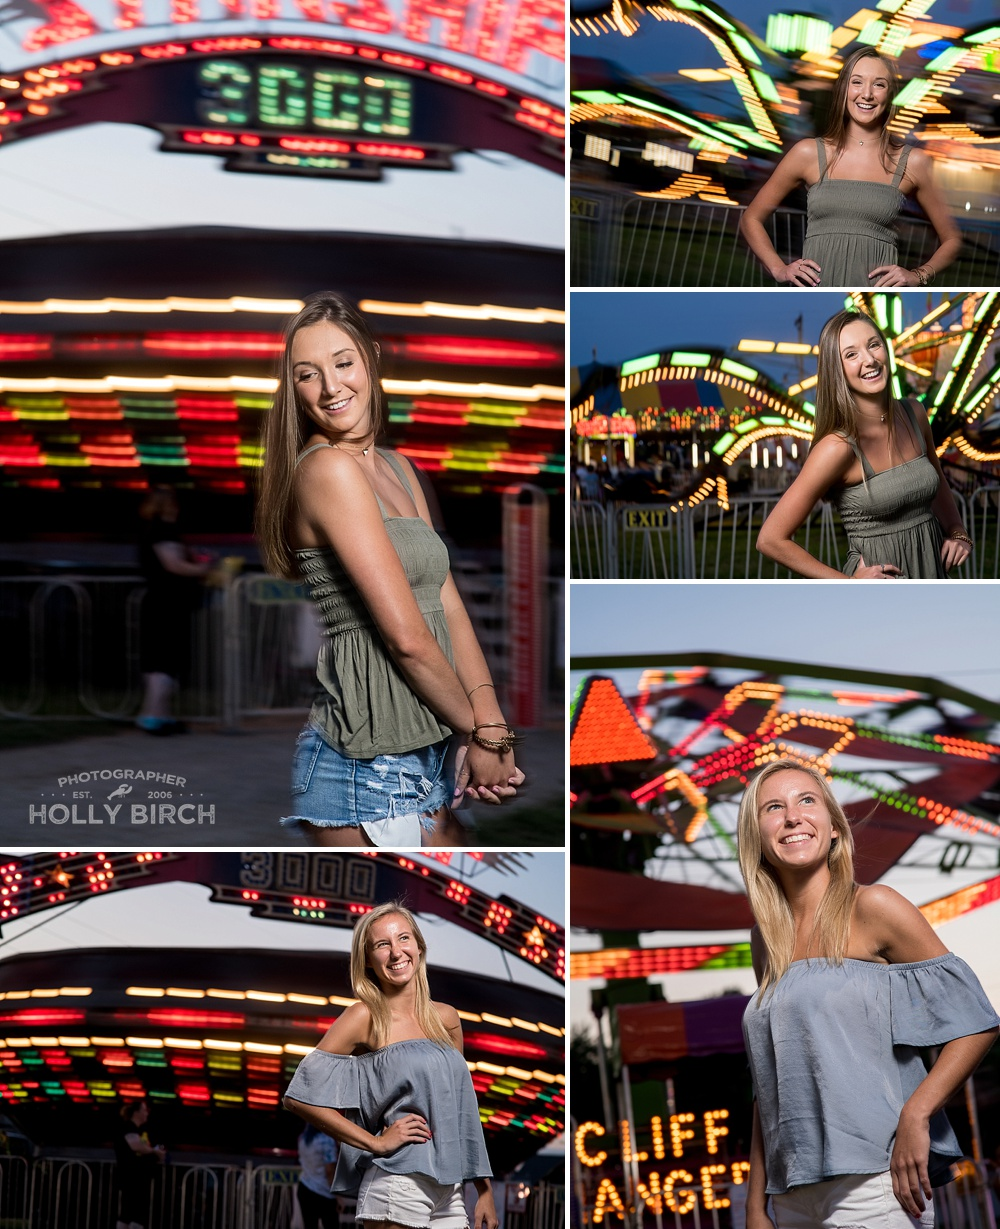 Central-IL-senior-model-photographer-carnival-fair-themed-shoot_3749.jpg